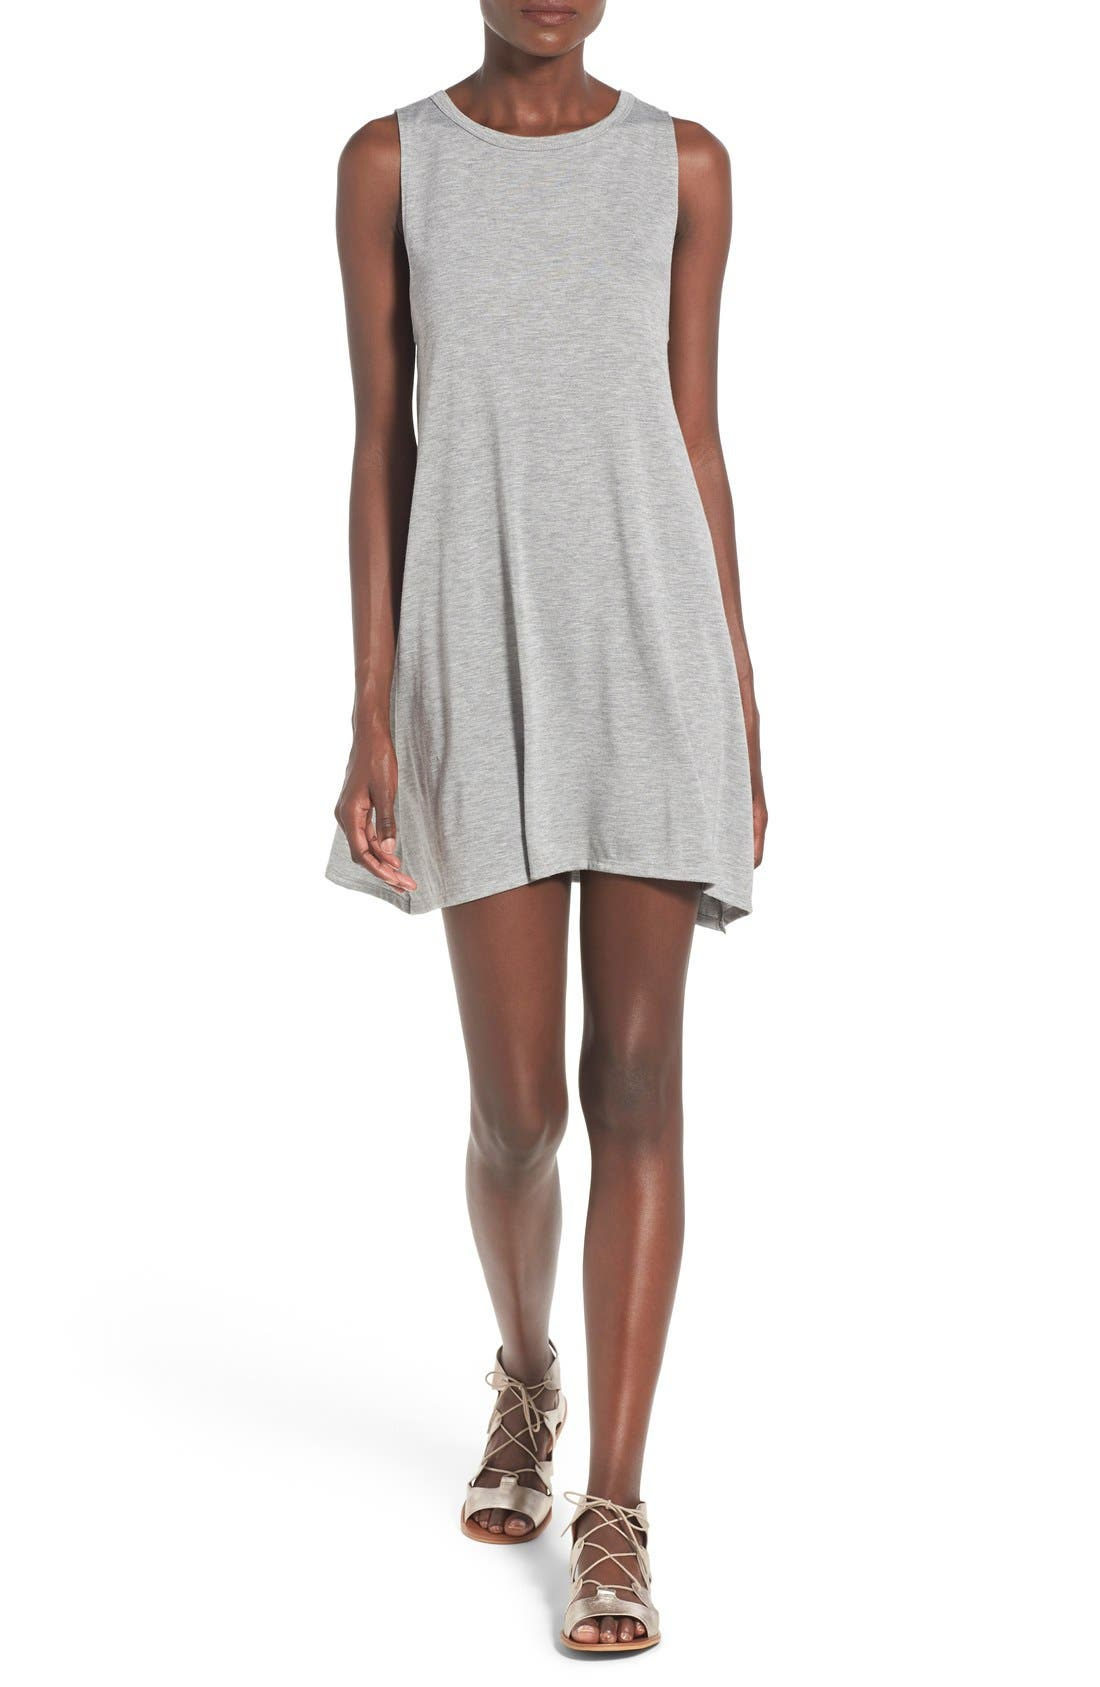 Alternate Image 1 Selected - Billabong 'Last Call' Sleeveless Swing Dress